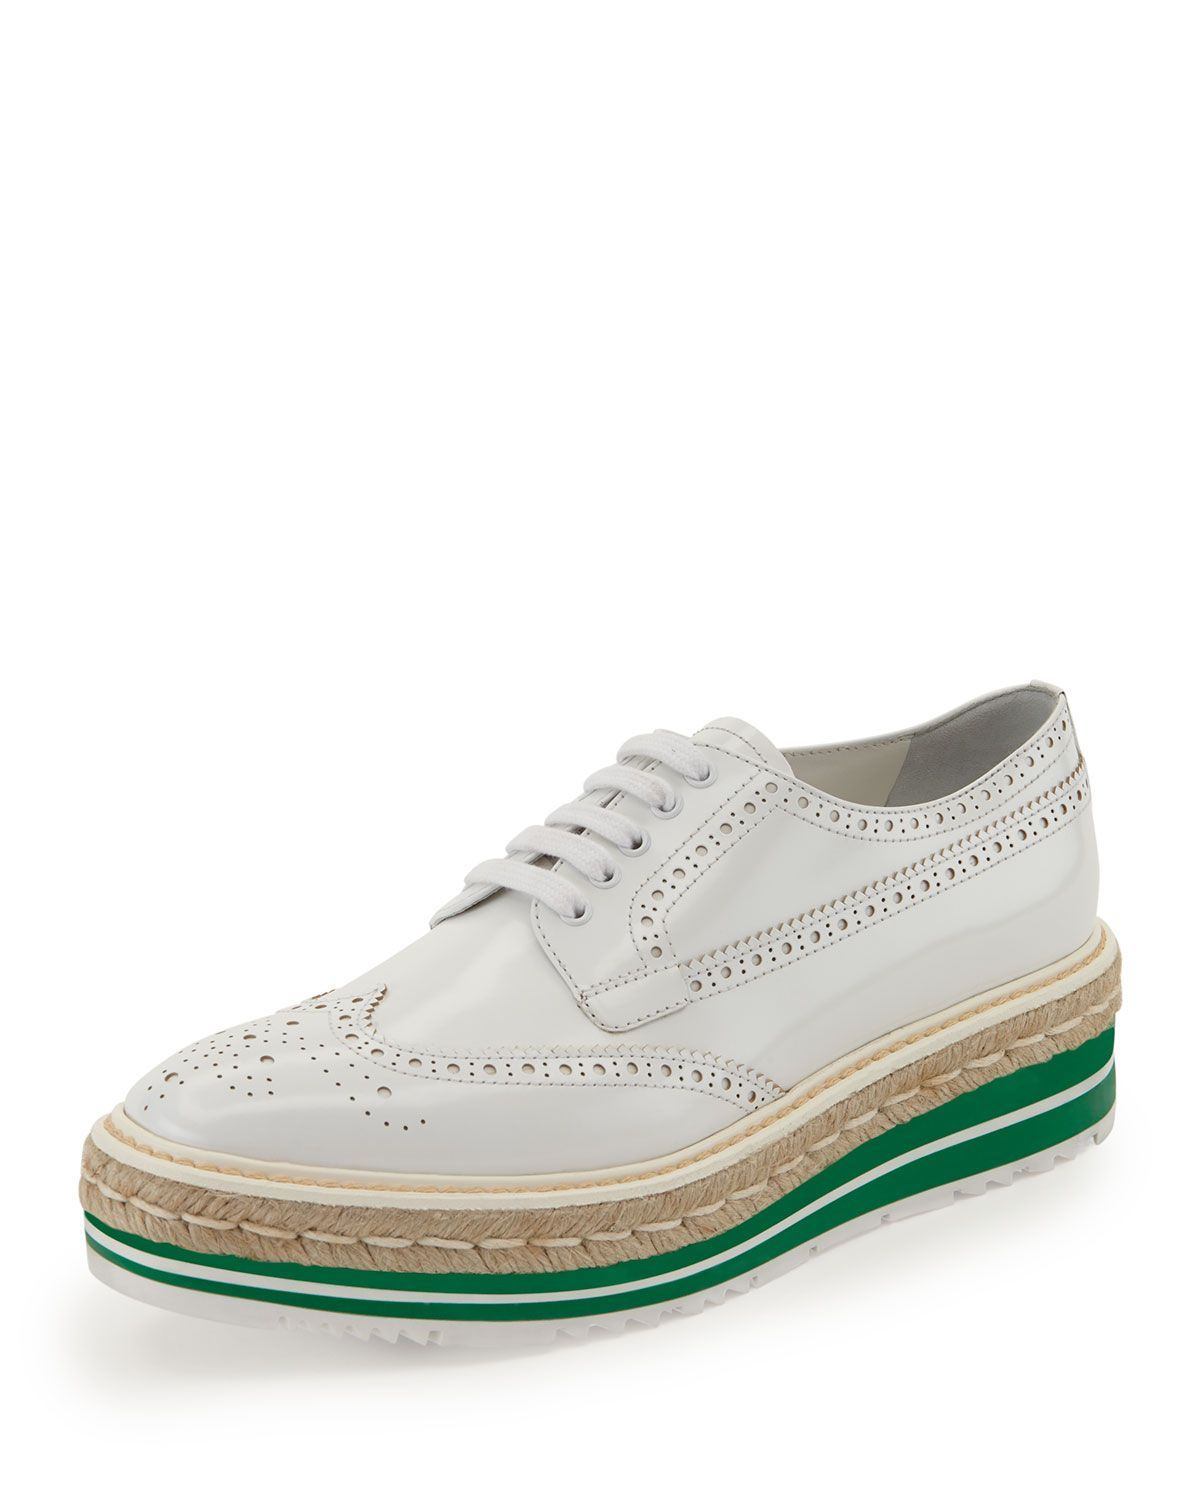 store sale sale tumblr Prada Platform Brogue Oxfords sale from china buy cheap fast delivery 100% authentic for sale cXAPTmk